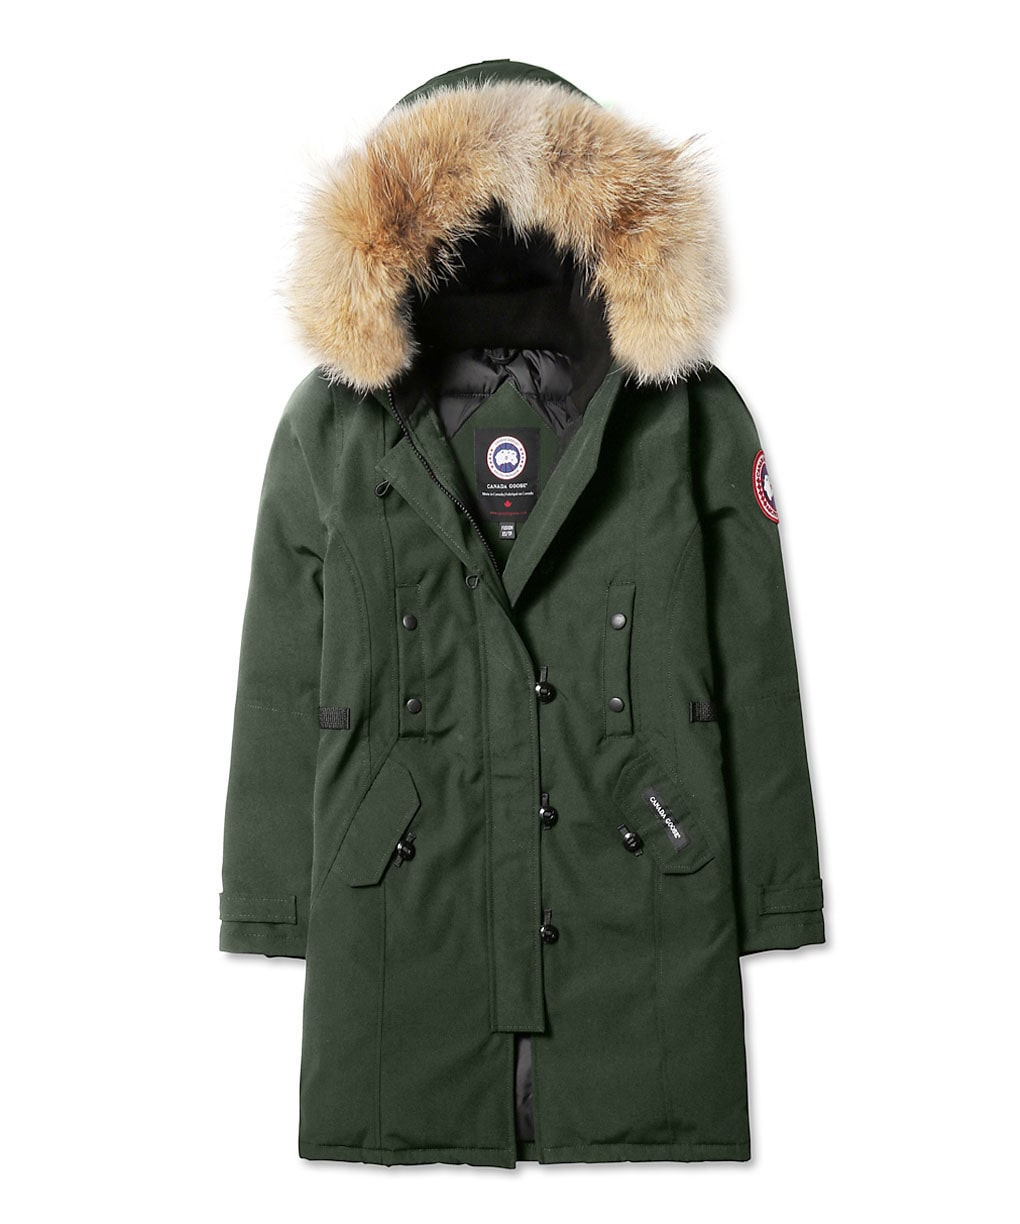 KENSINGTON PARKA FUSION FIT